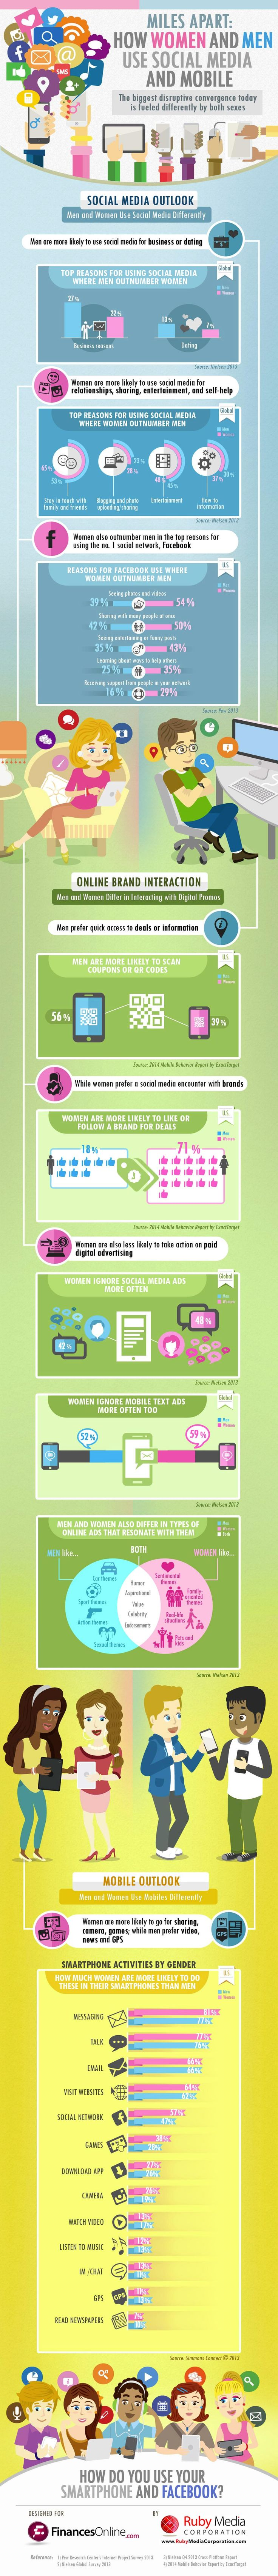 How Men and Women Use Mobile and Social Media Differently (Infographic)